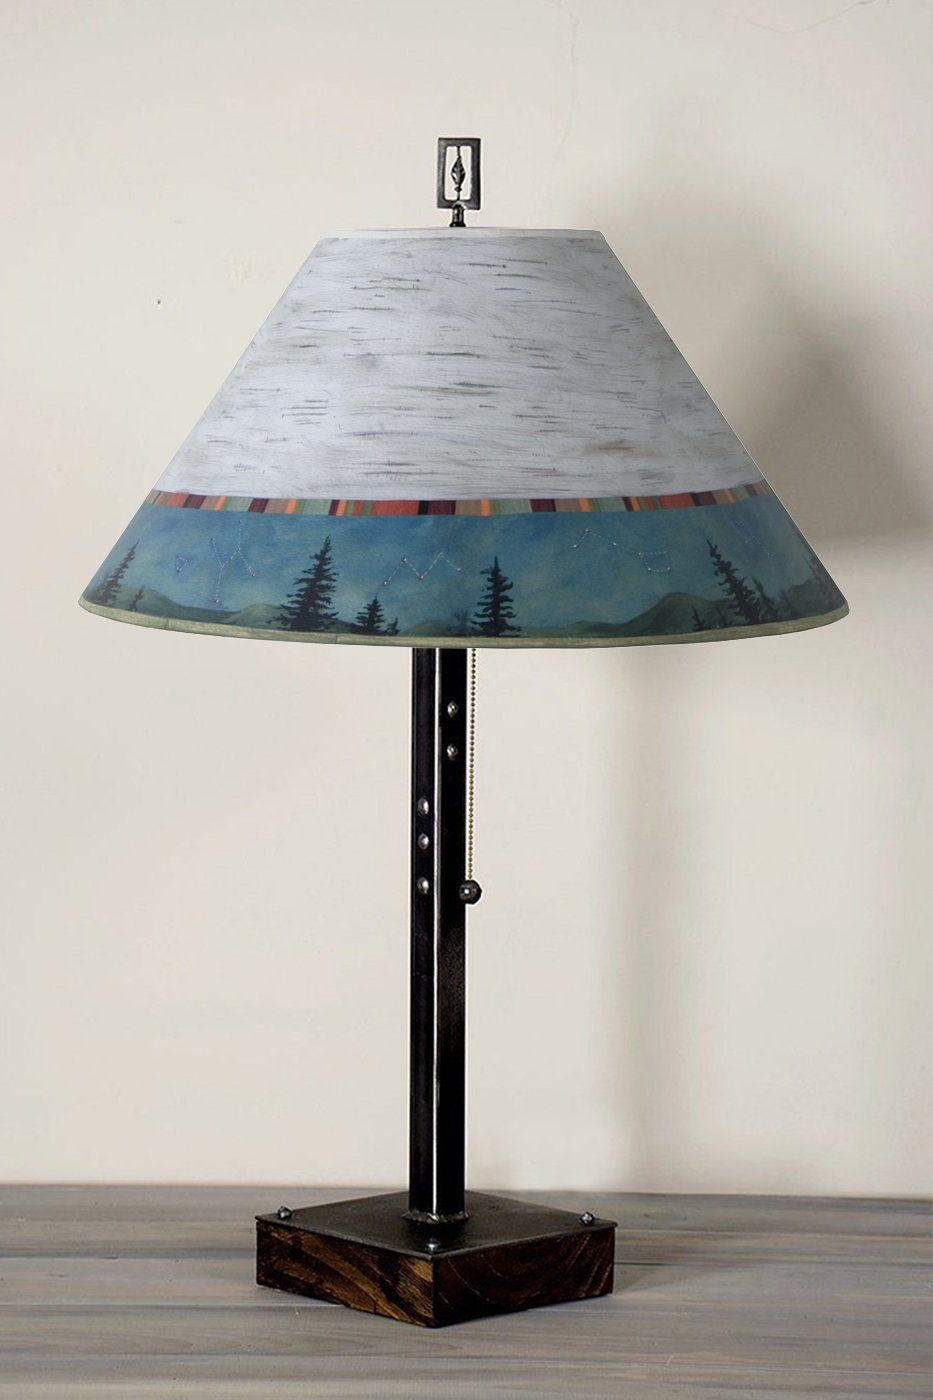 Steel Table Lamp on Wood with Large Conical Shade in Birch Midnight